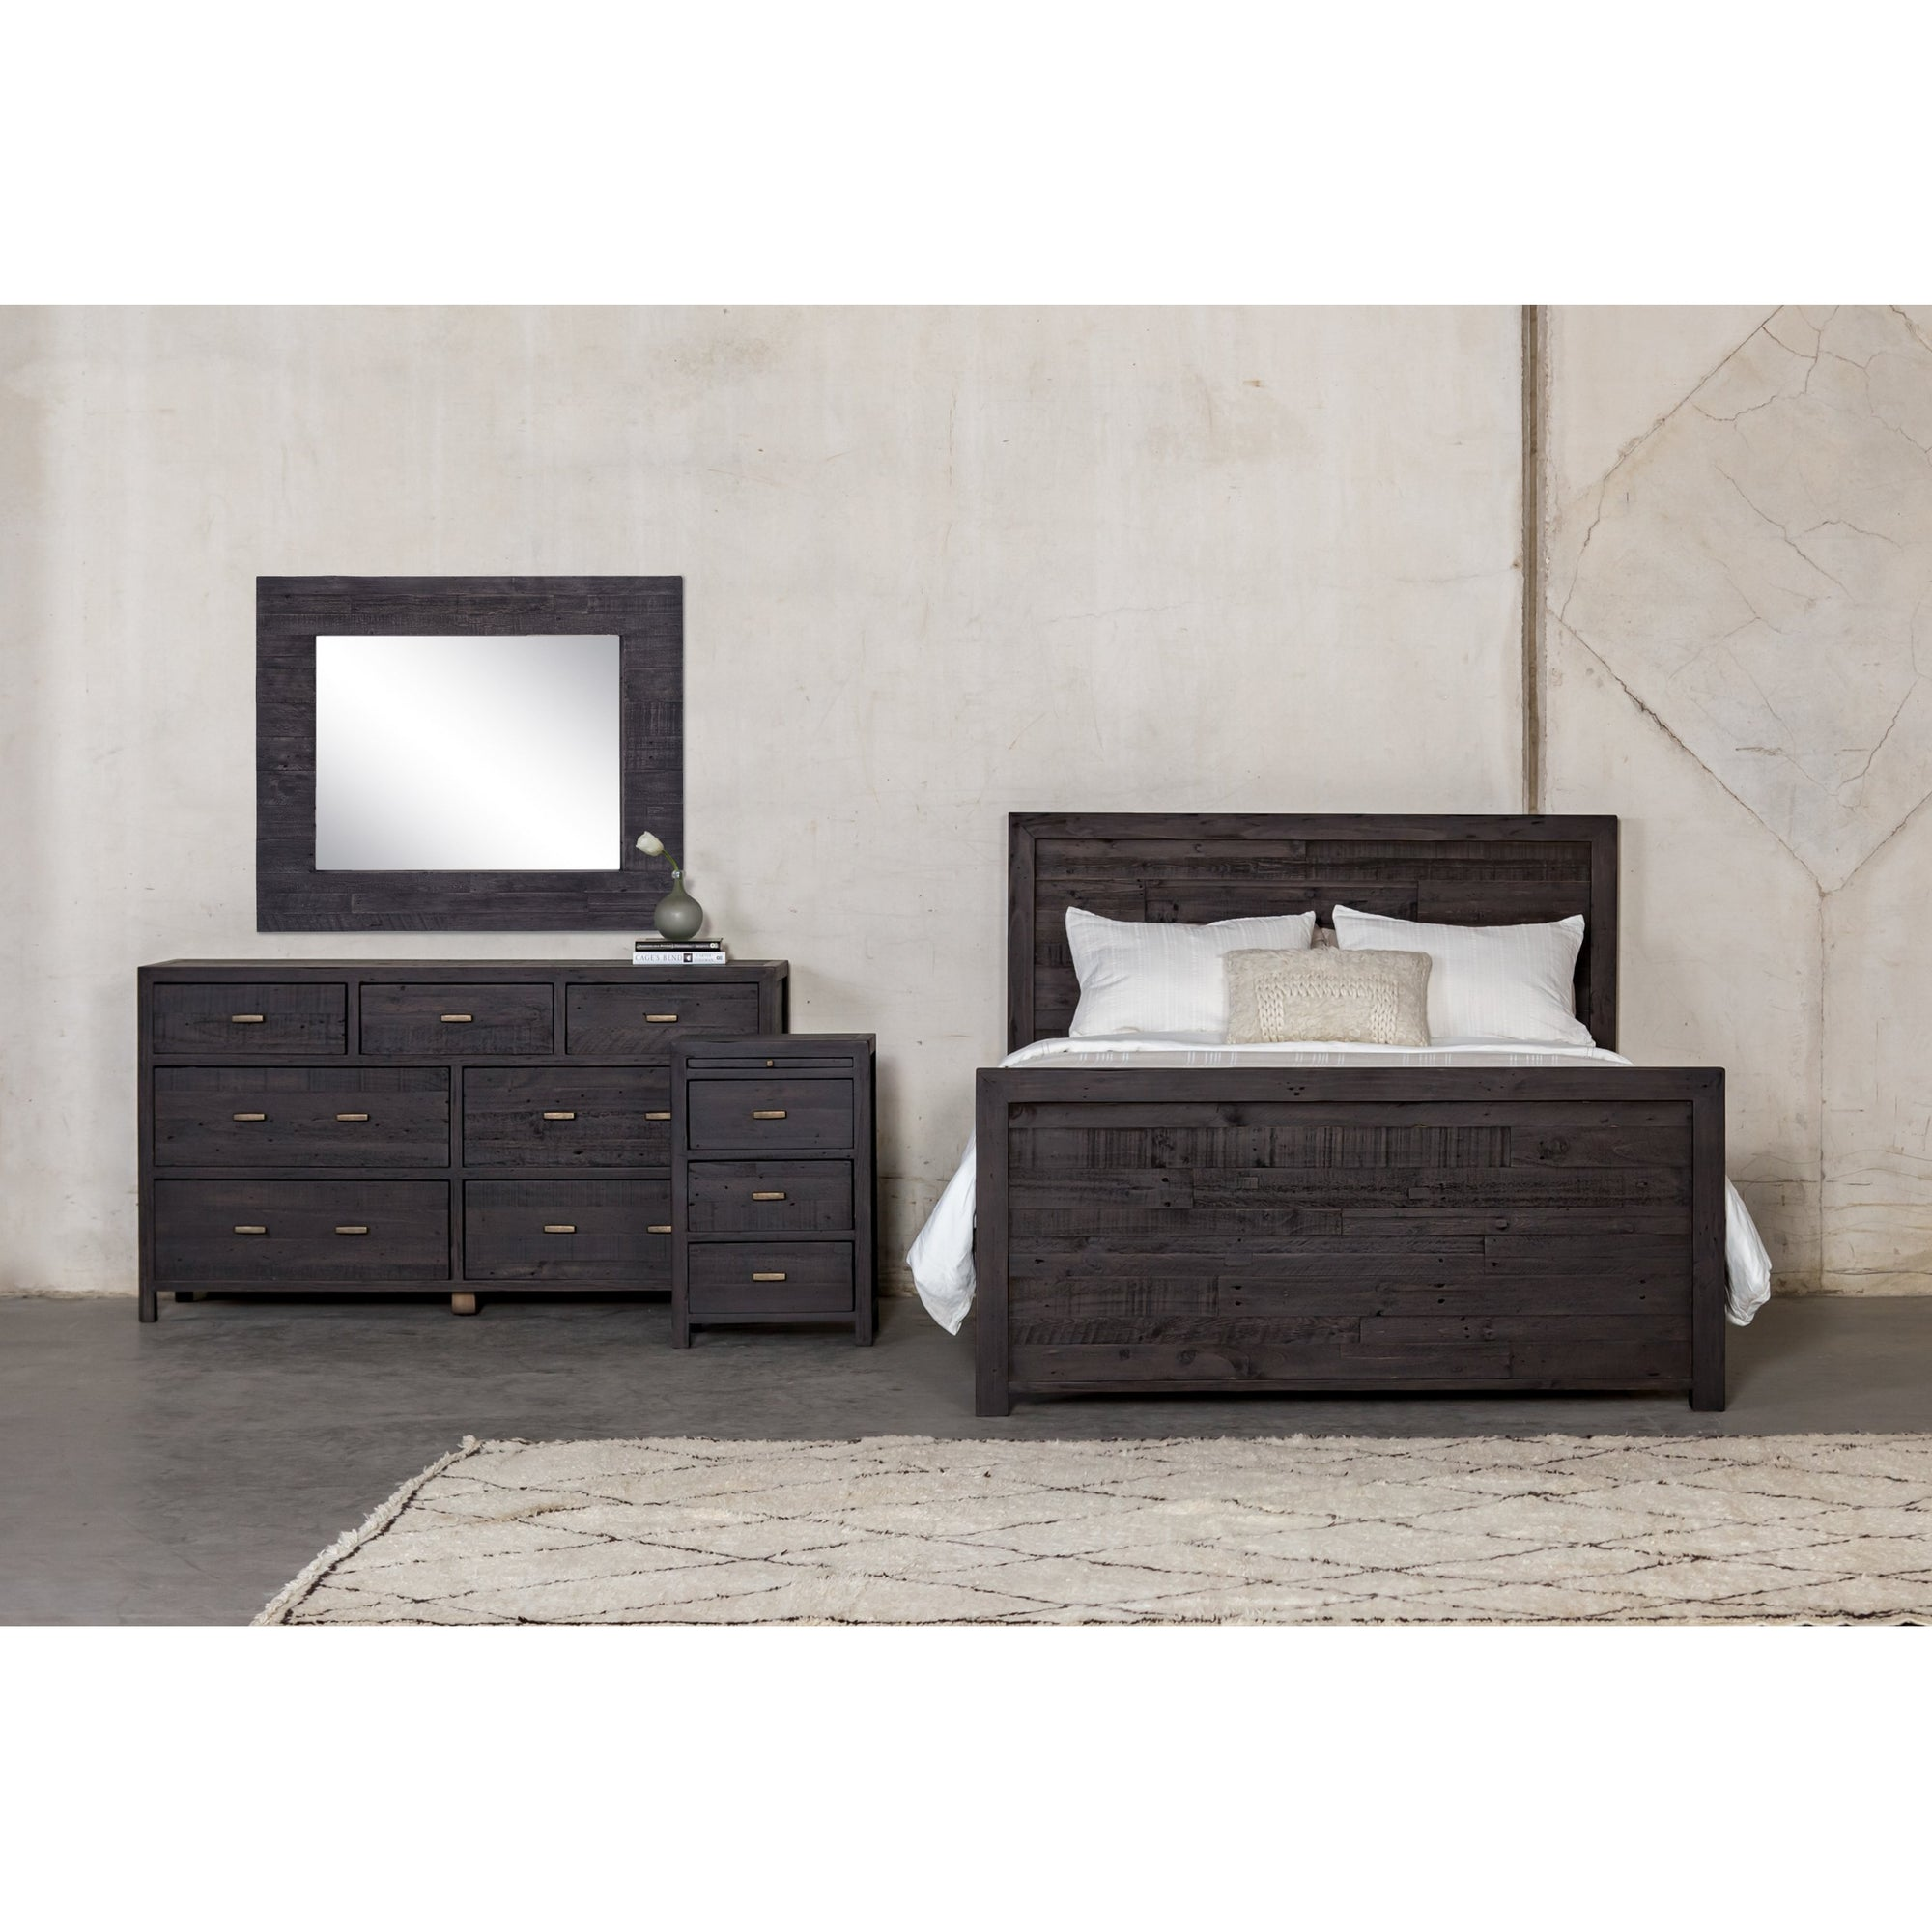 Caminito Nightstand - Dark Carbon